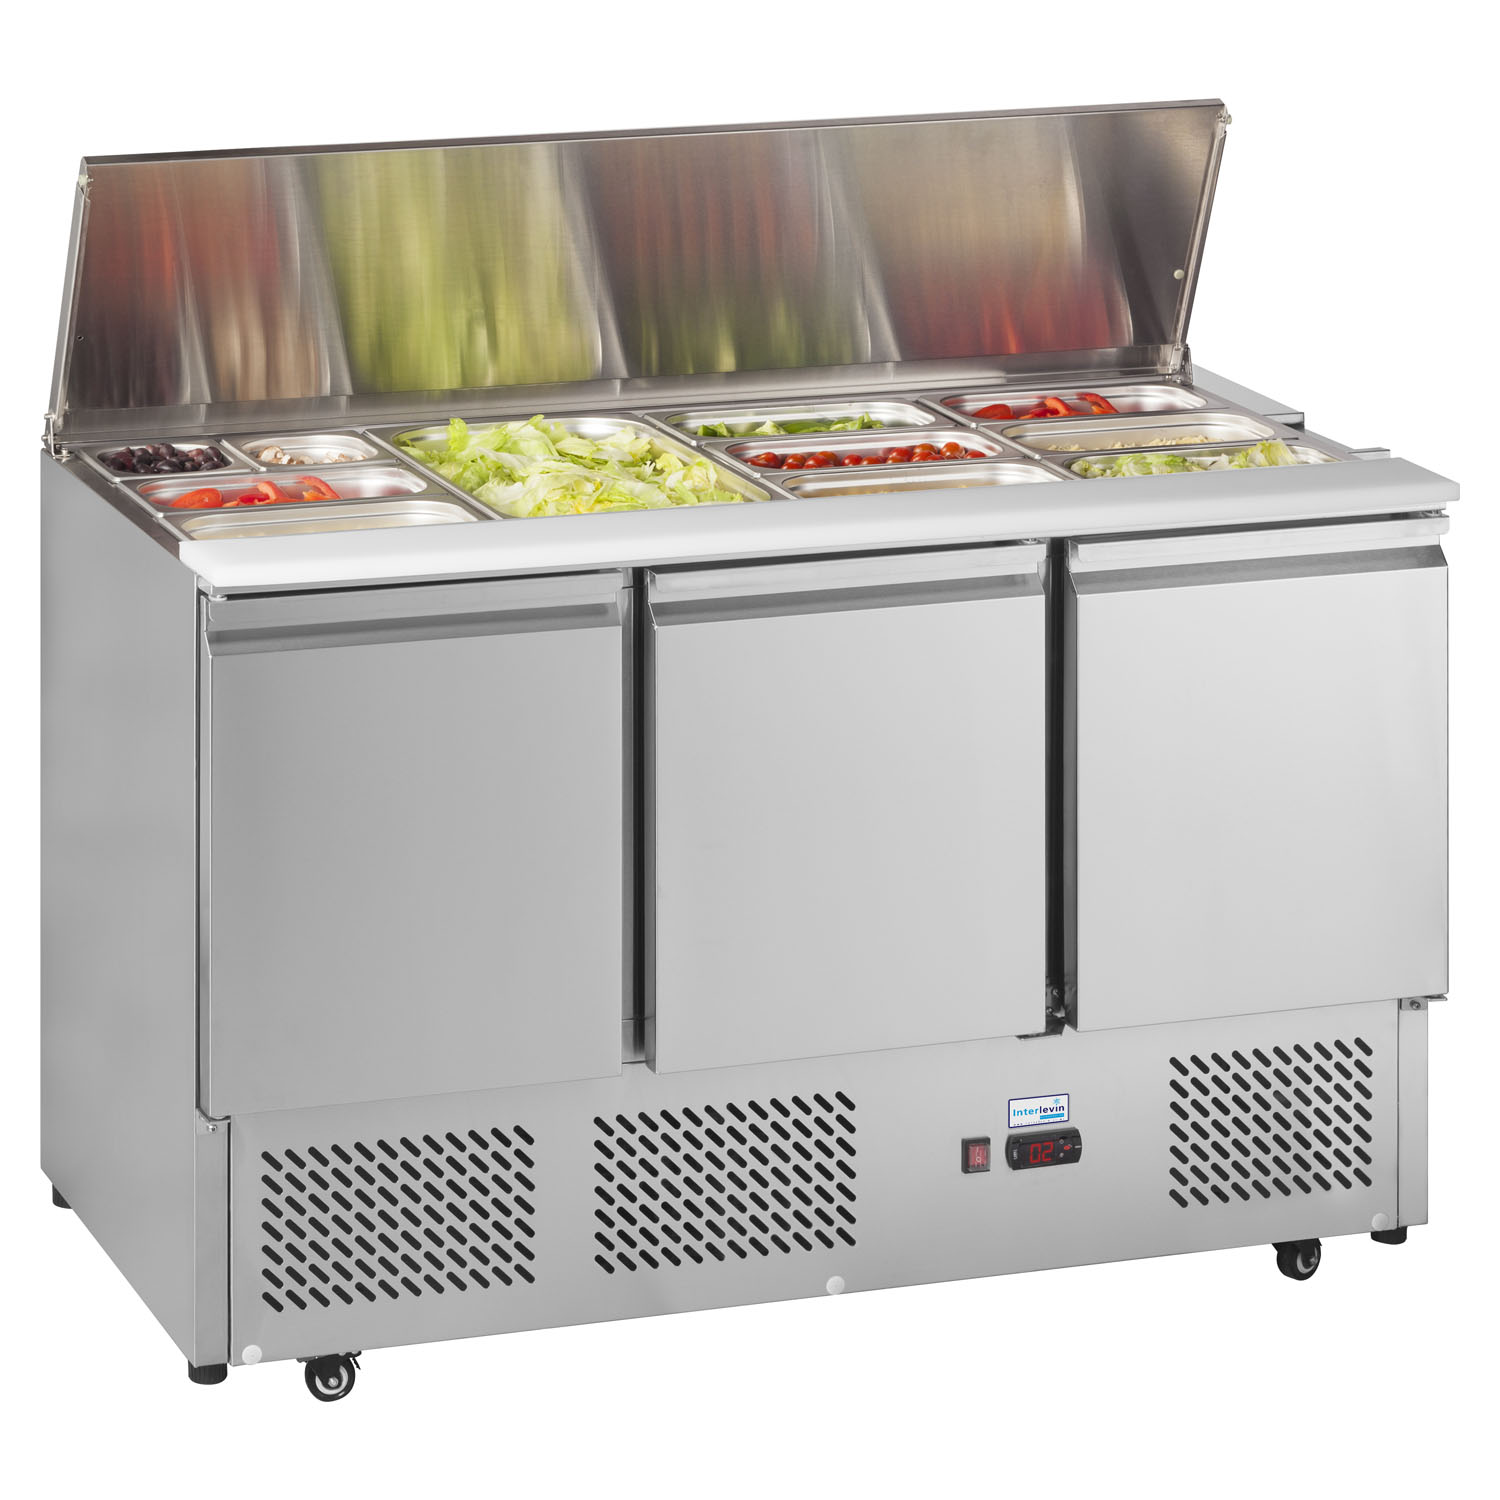 An image of Interlevin ESA1365 Refrigerated Saladette Counter